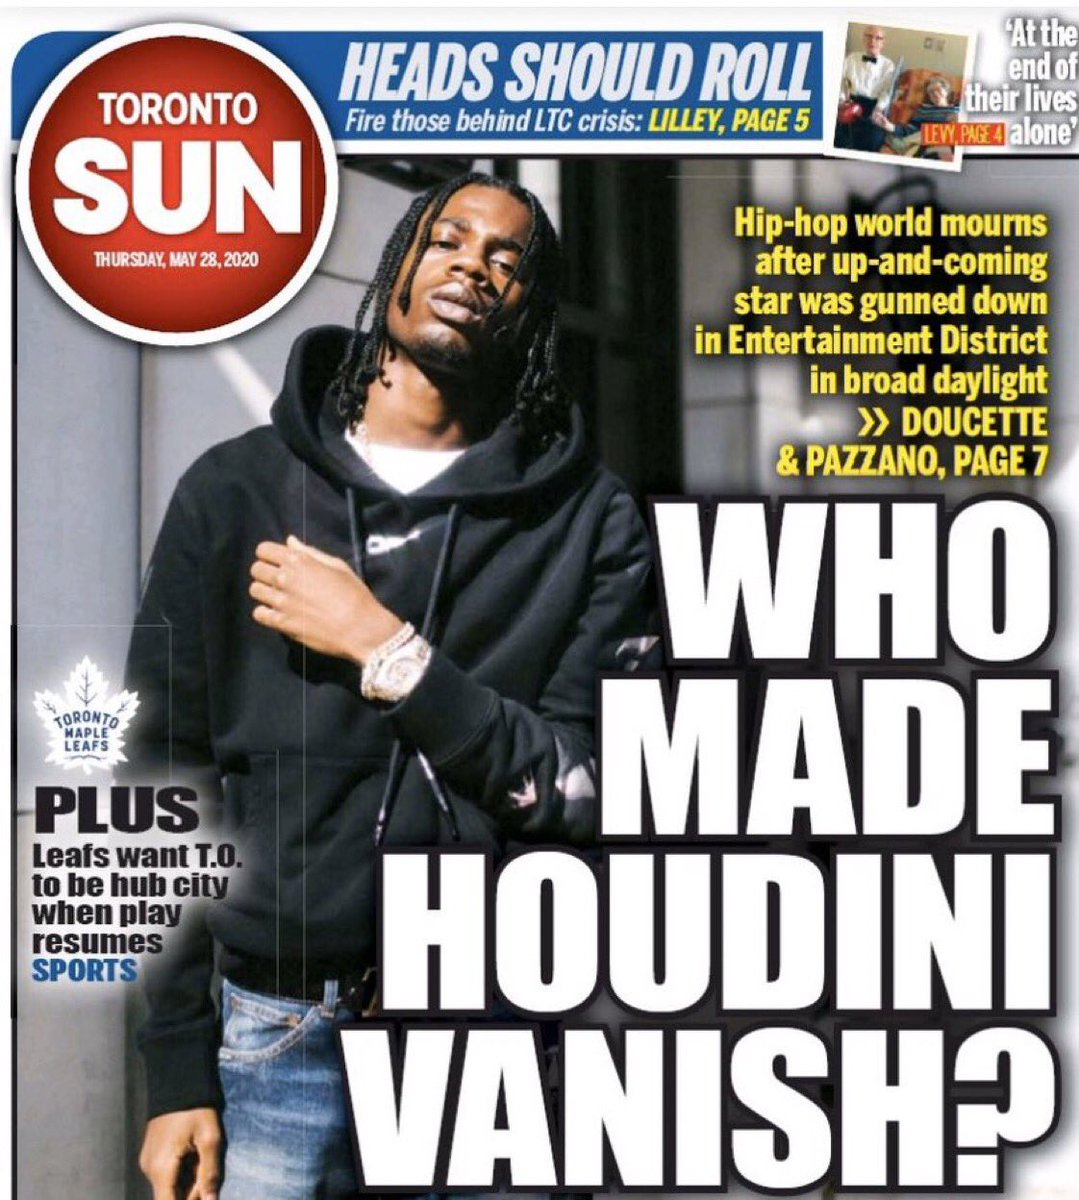 This cover is not ok. Black lives aren't trivial. Violent crime is not funny. This lacks journalistic integrity and moral conscience. Be better @TheTorontoSun https://t.co/ld8VK9ITKc